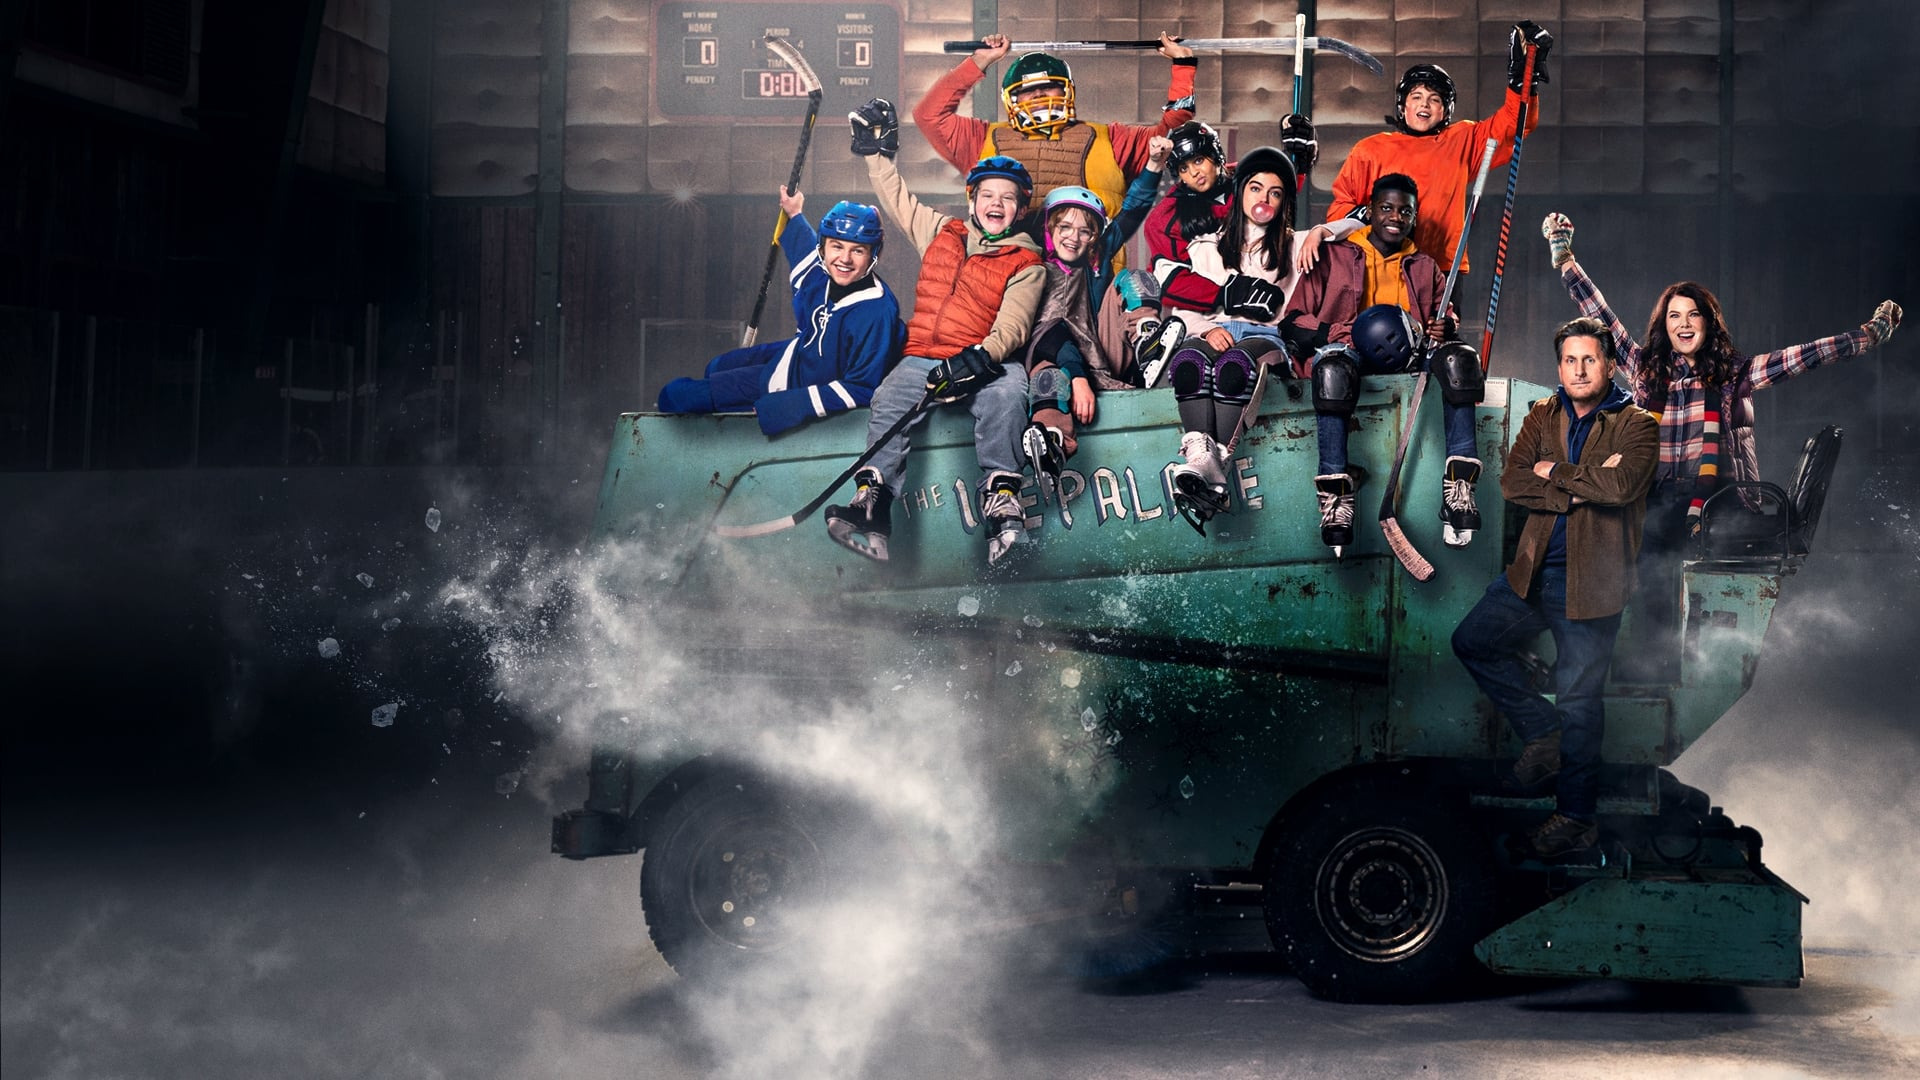 Show The Mighty Ducks: Game Changers